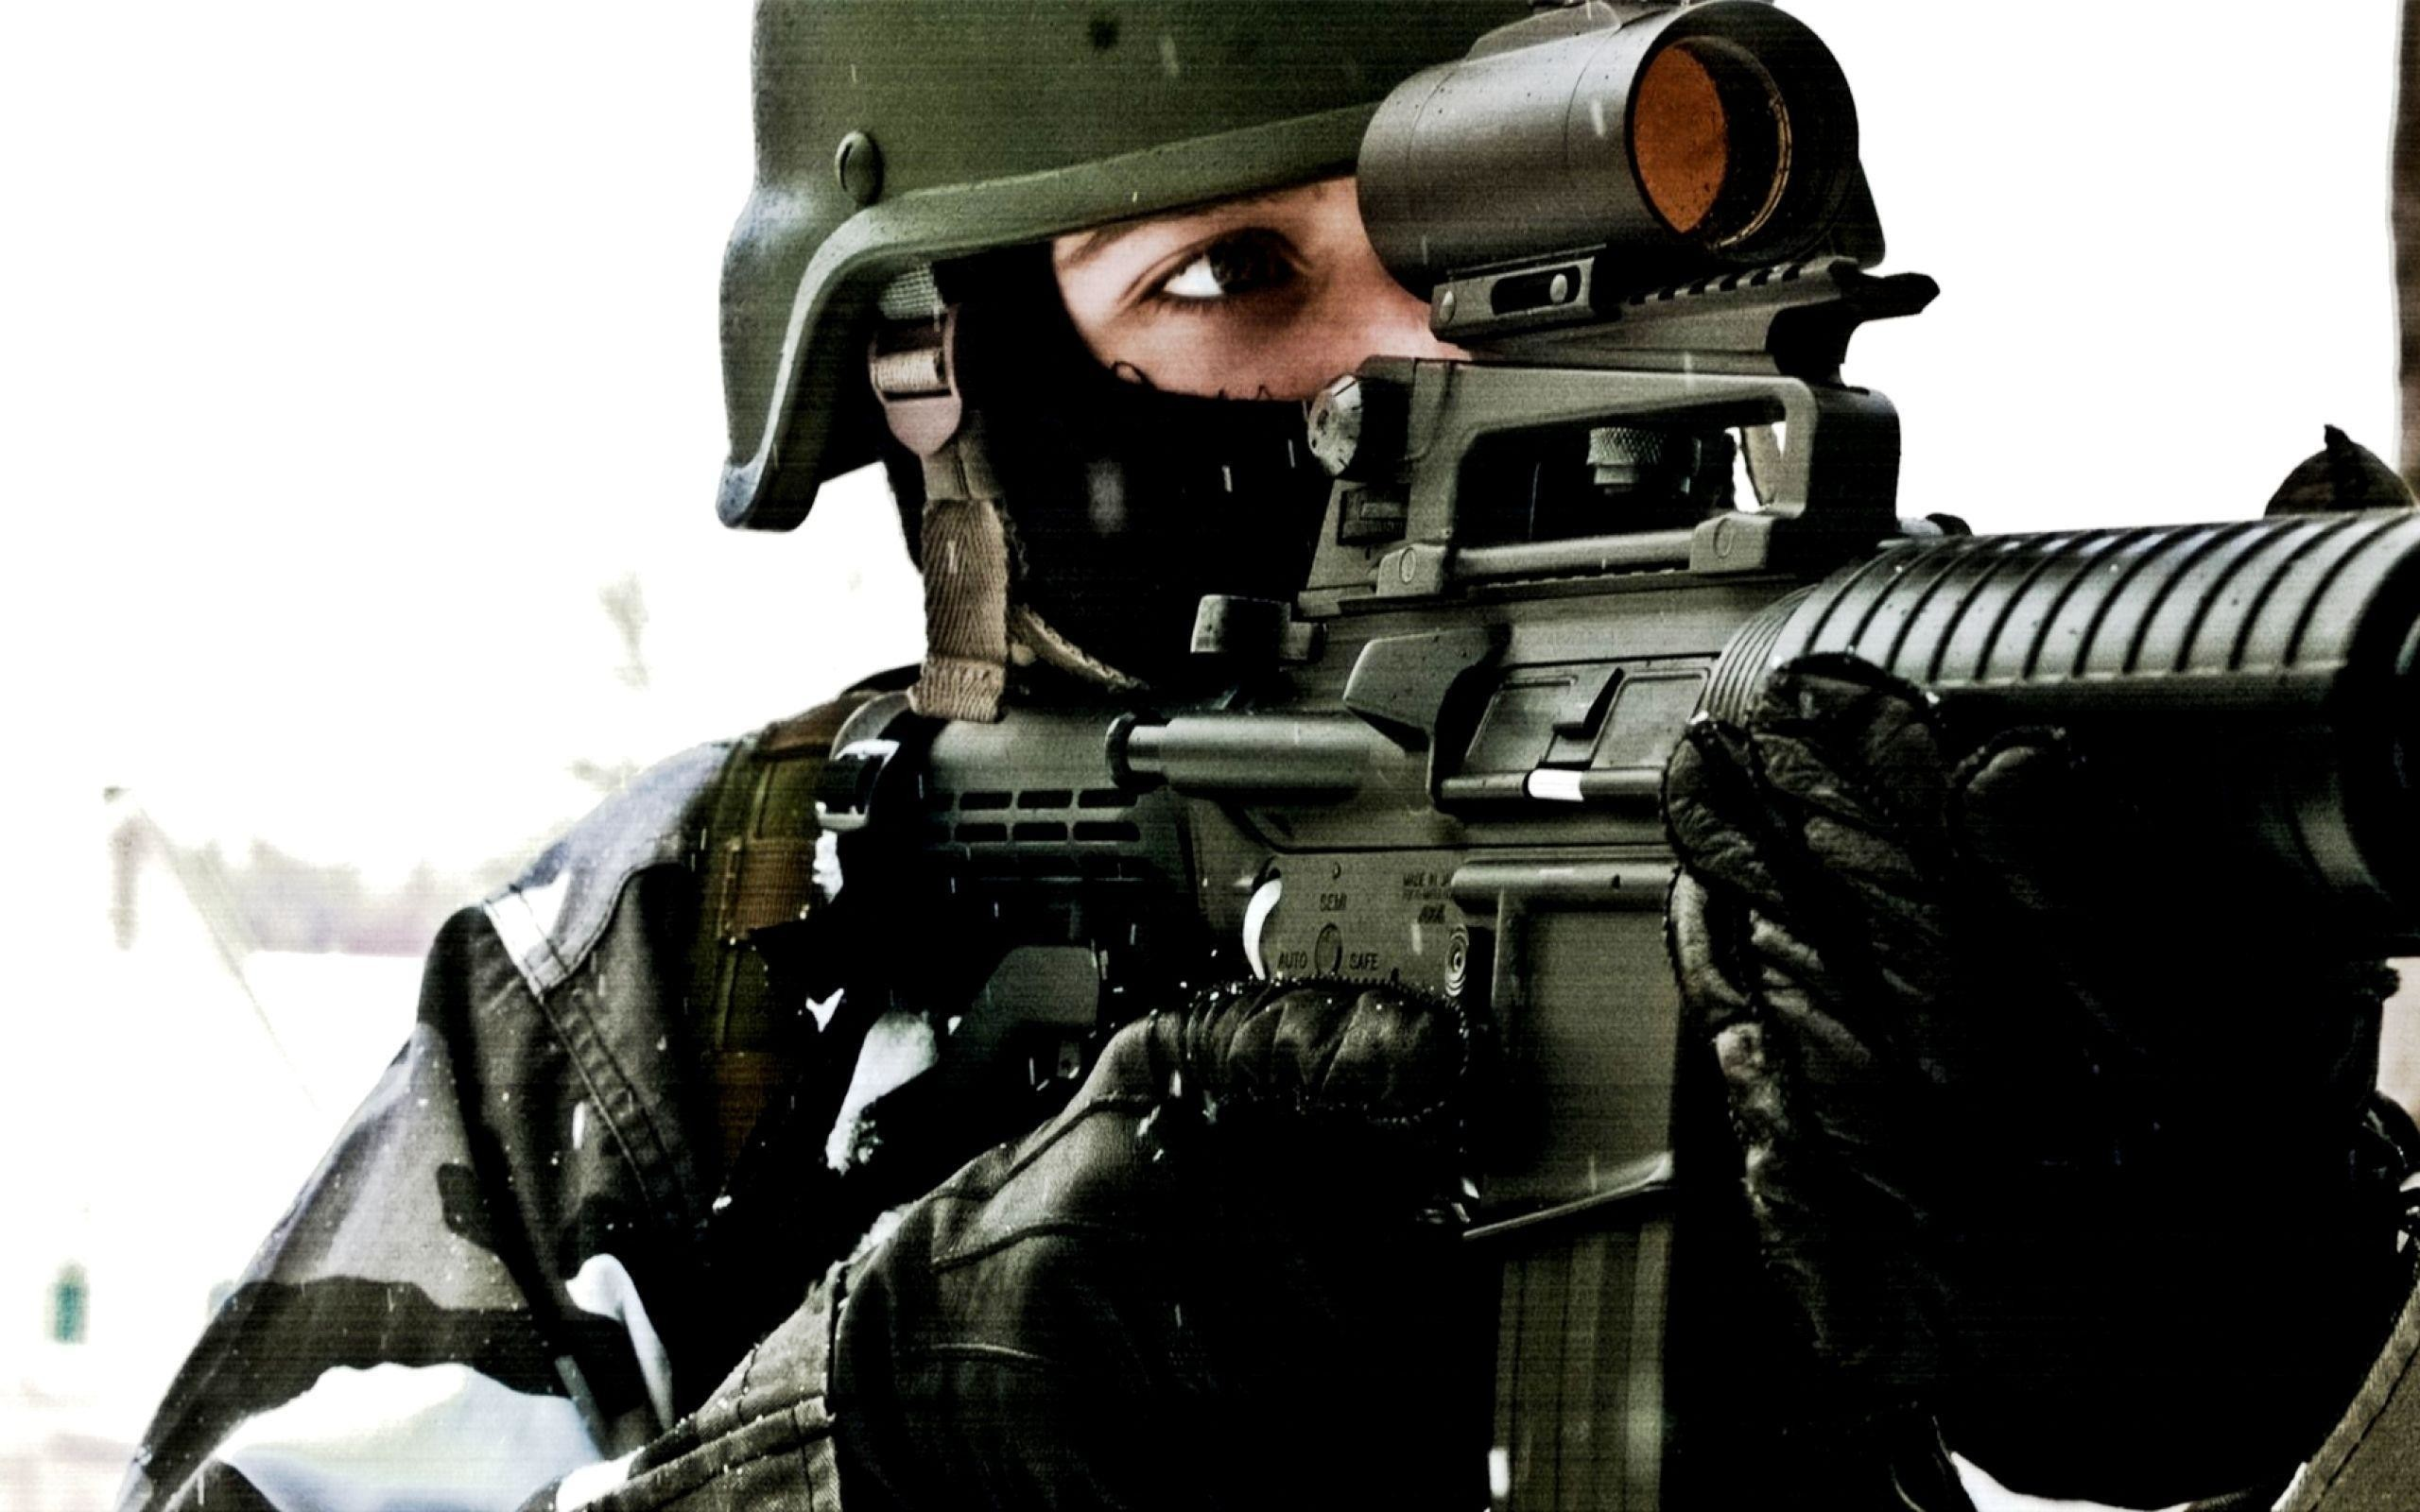 People Wallpaper: Us Army Special Forces Wallpaper Wide with HD .